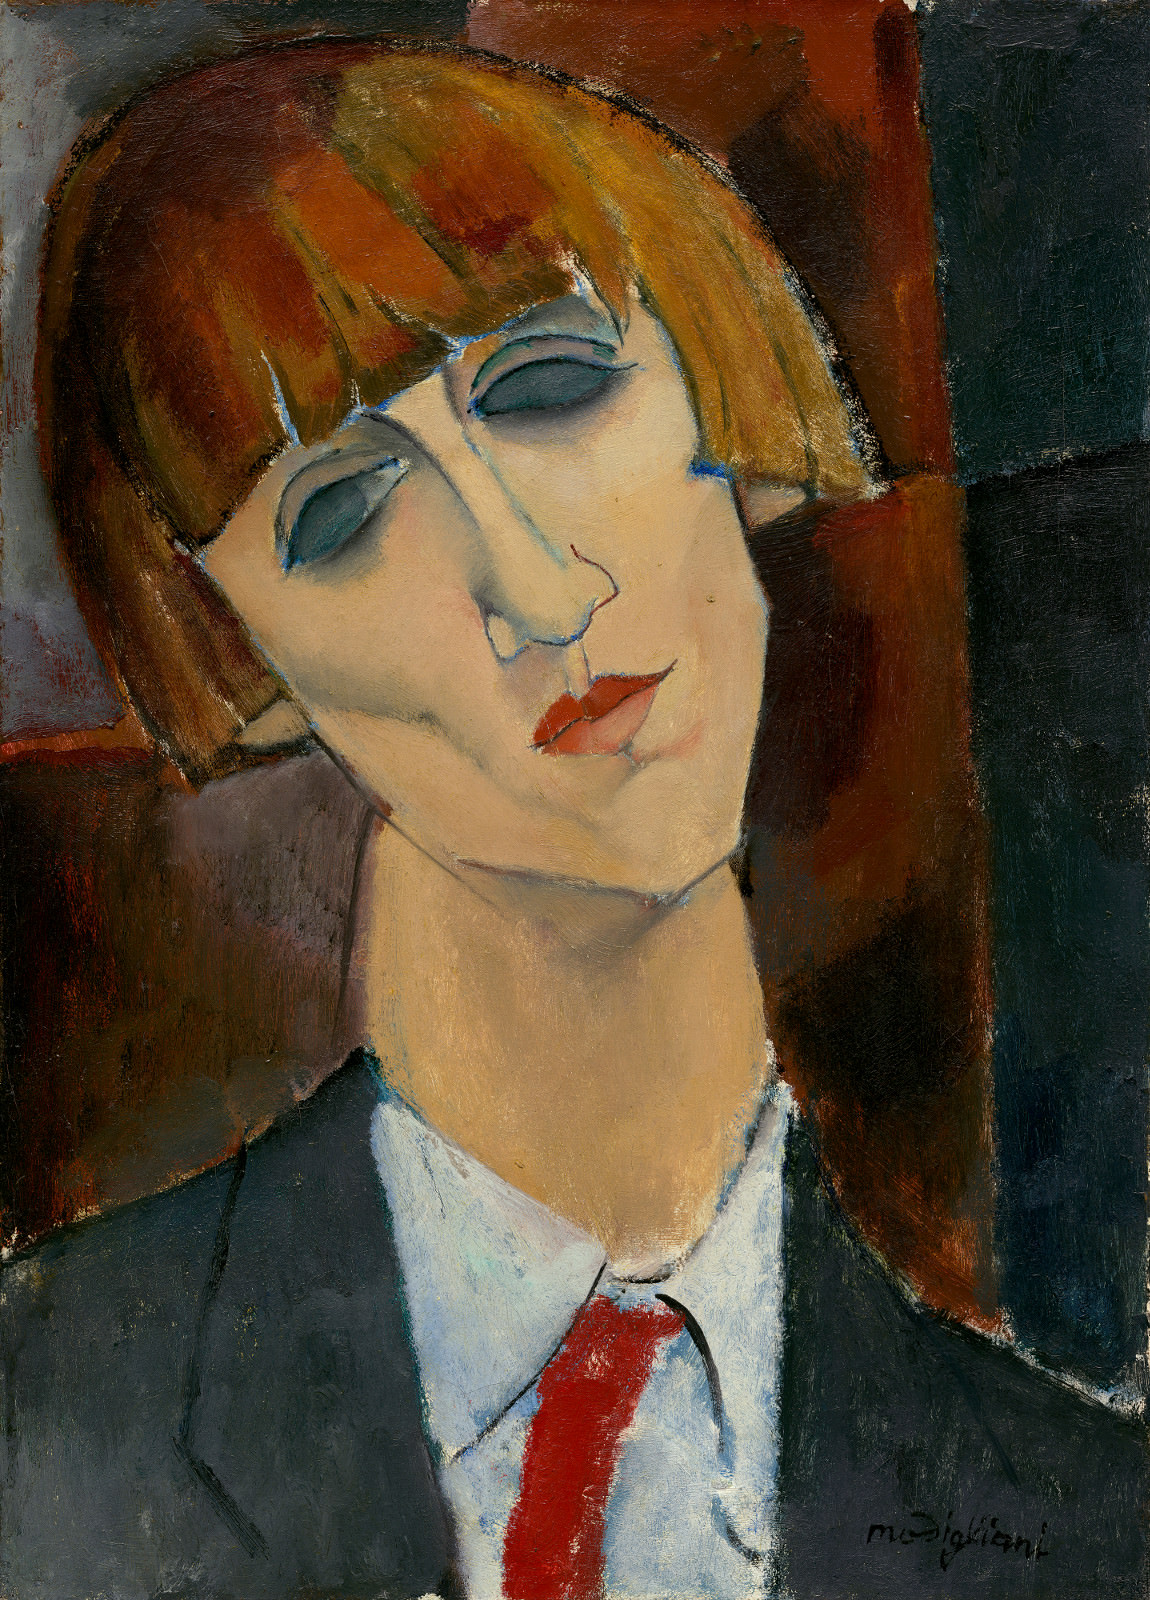 Fig. 7 – Madamme Kisling, Amedeo Modigliani, 1917, óleo sobre tela, 46,2 x 33,2 cm. National Gallery of Art, Washington. Chester Dale Coleção.